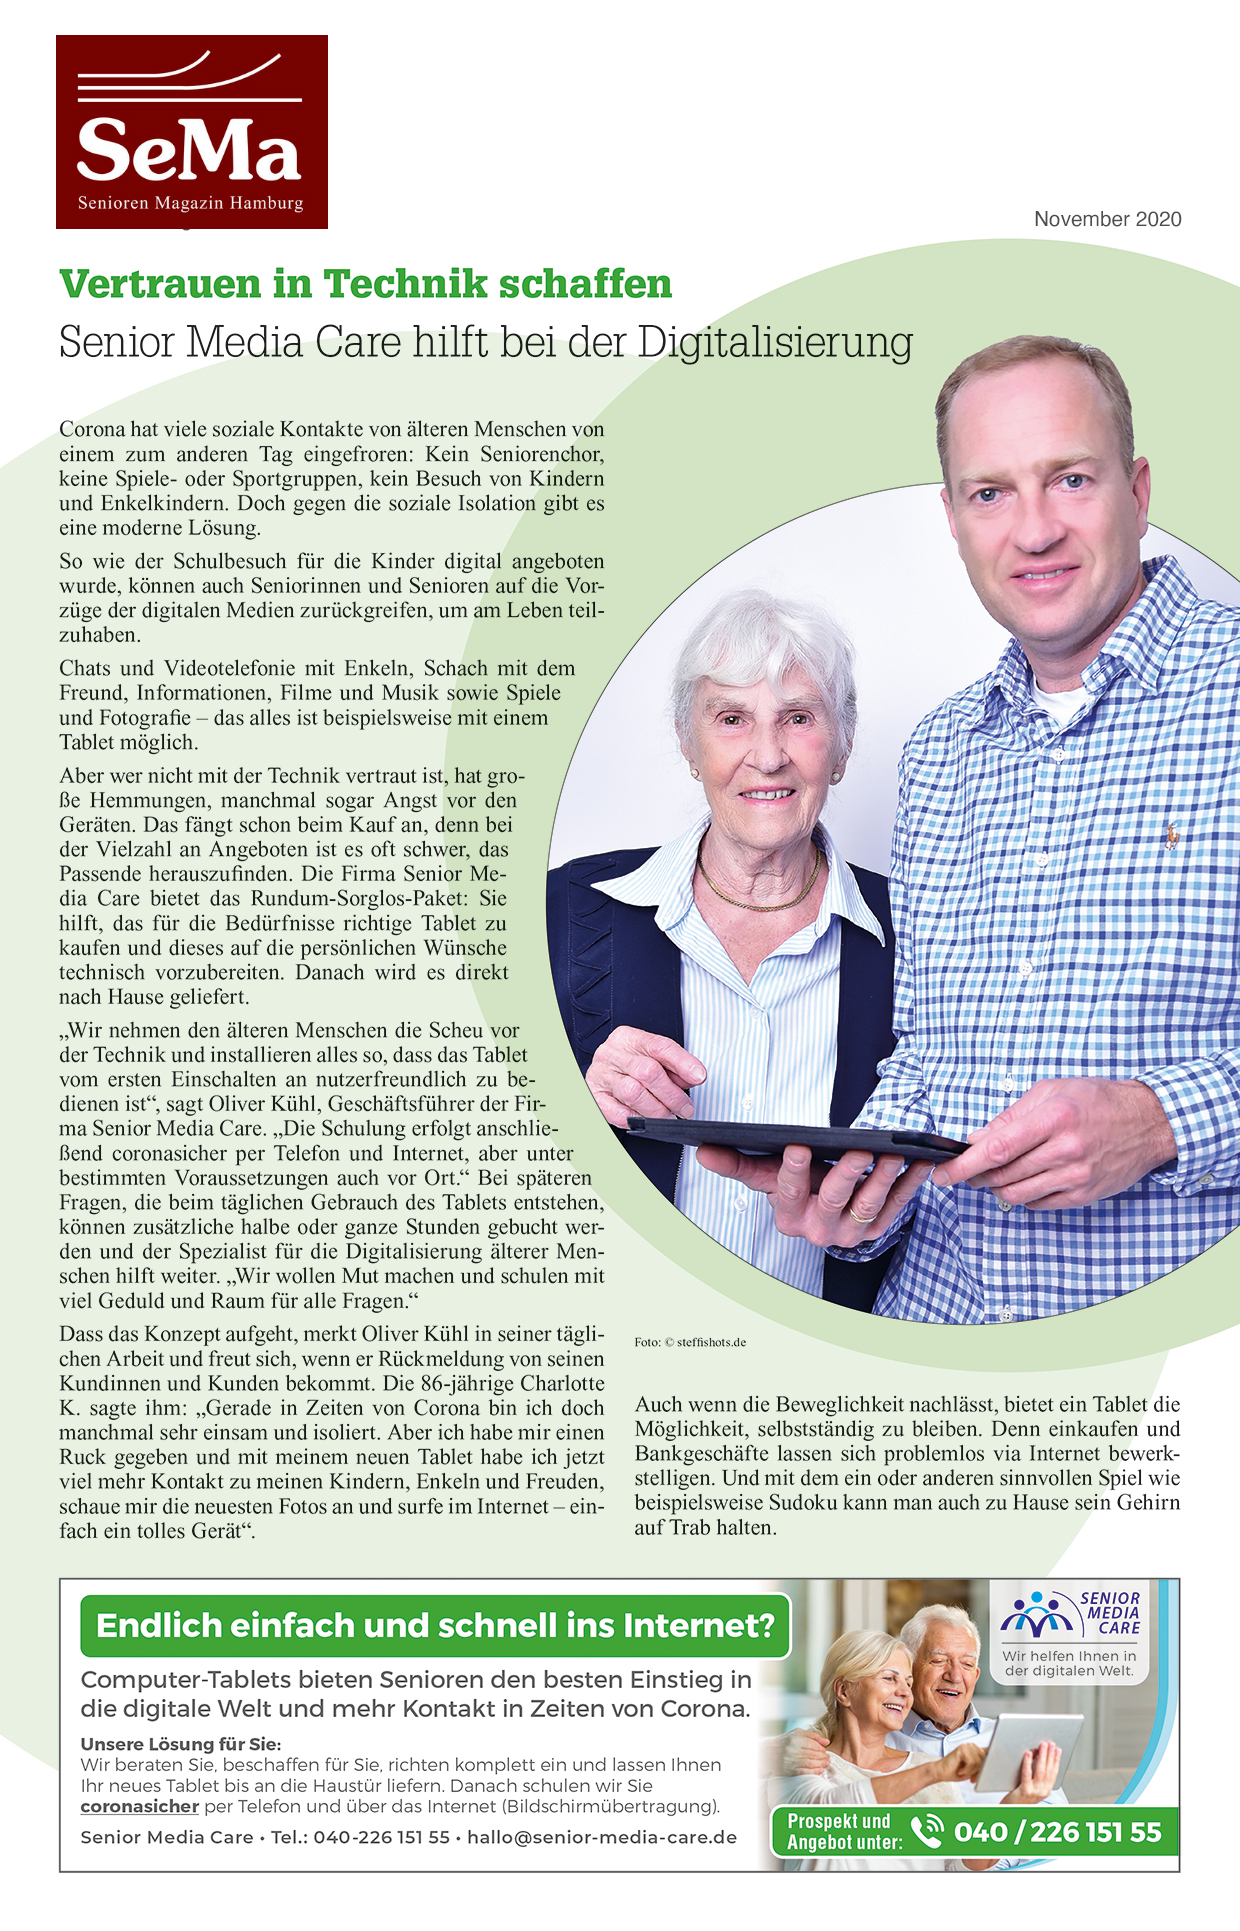 PR-Bericht Senior Media Care in der Zeitschrift Senioren-Magazin im November 2020